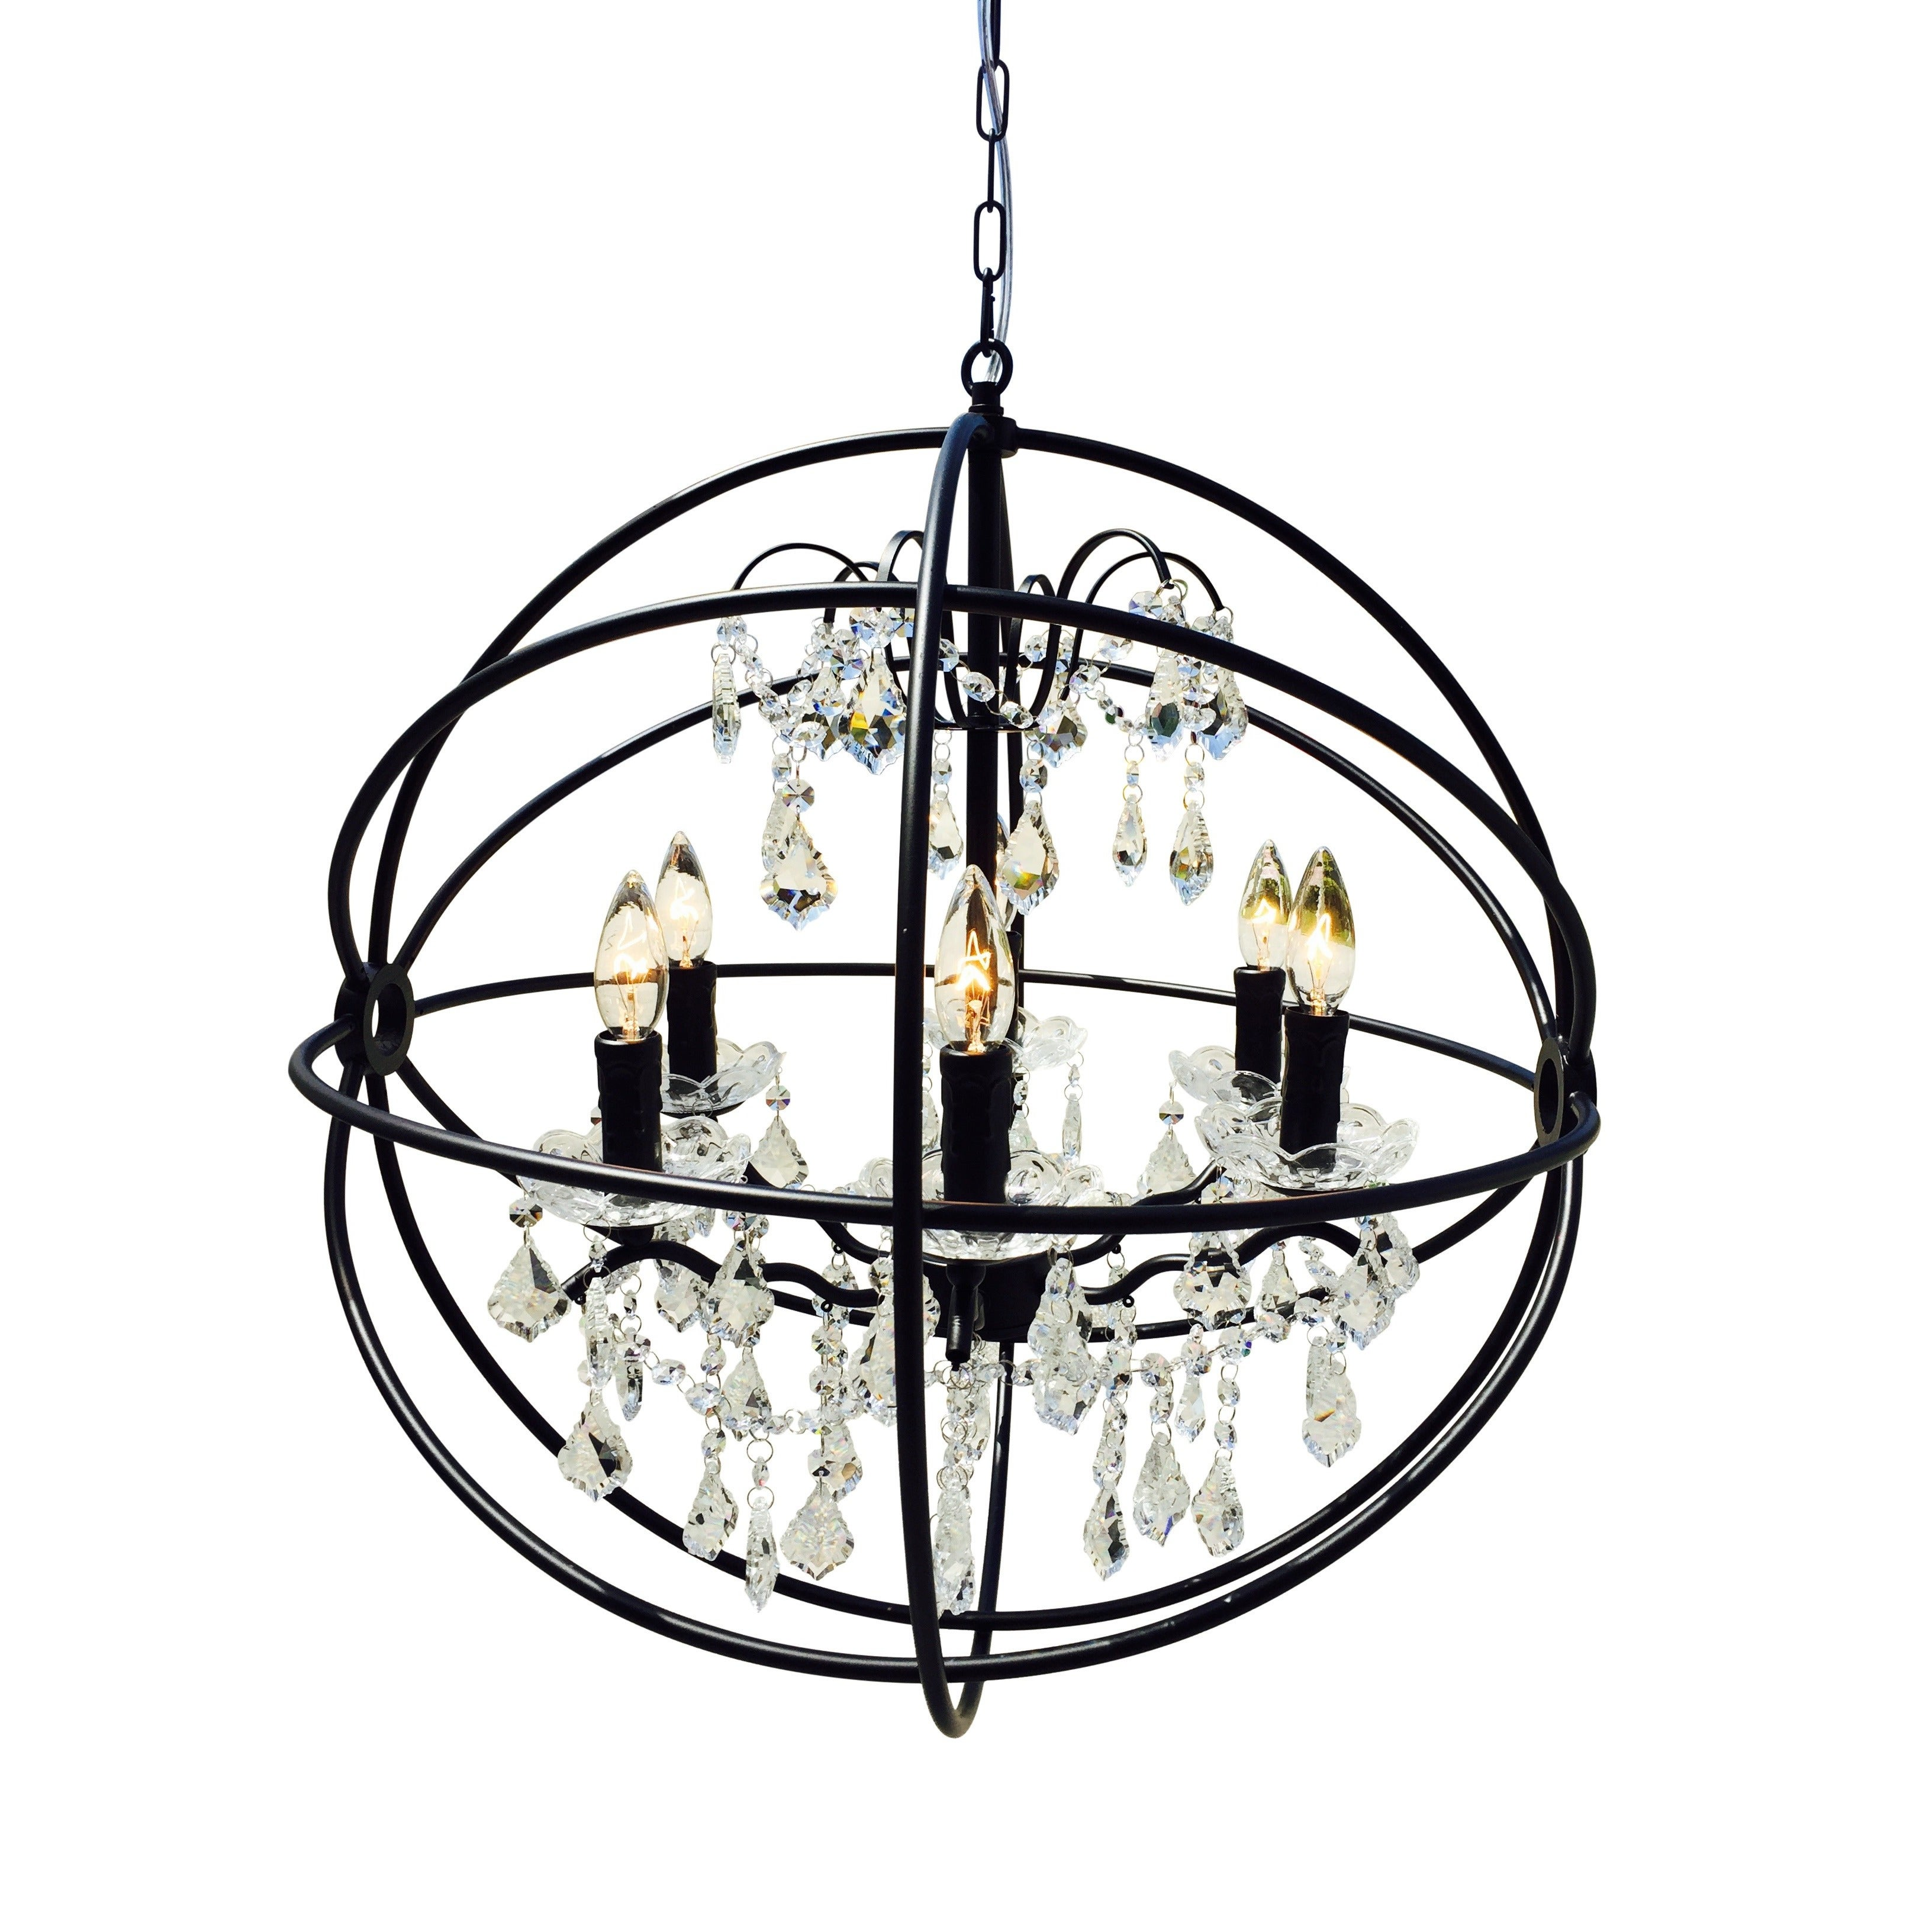 Black Wrought Iron Orb Chandelier